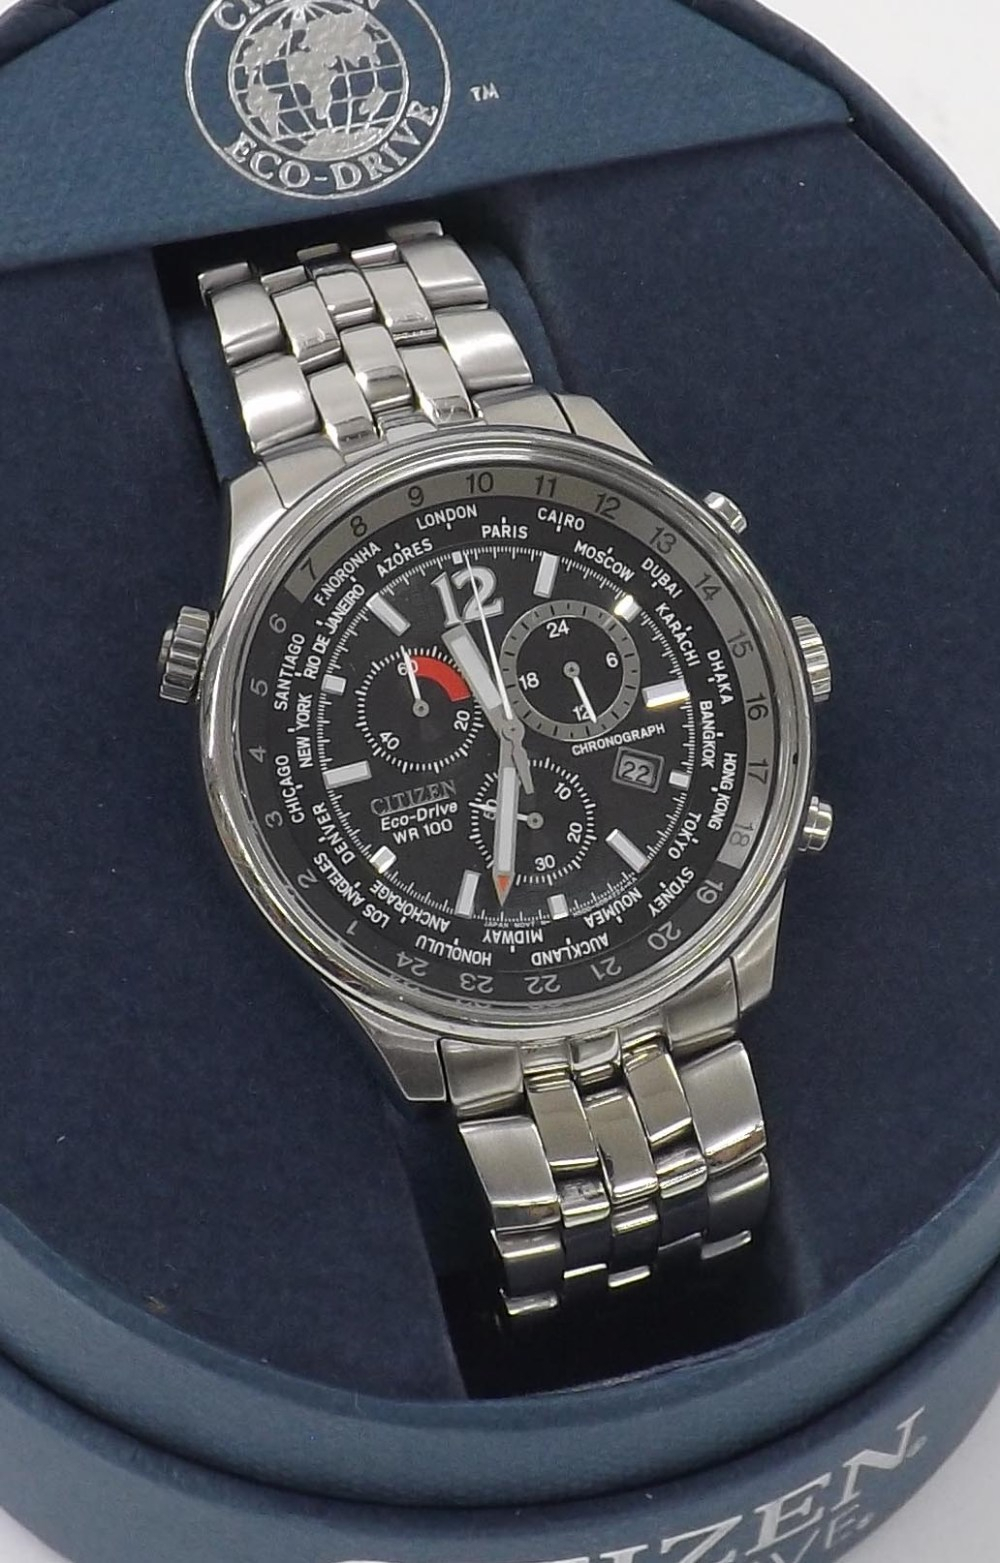 Citizen Eco-Drive Wr100 Chronograph Stainless Steel within Citizen Eco Drive Chronograph Wr100 Manual